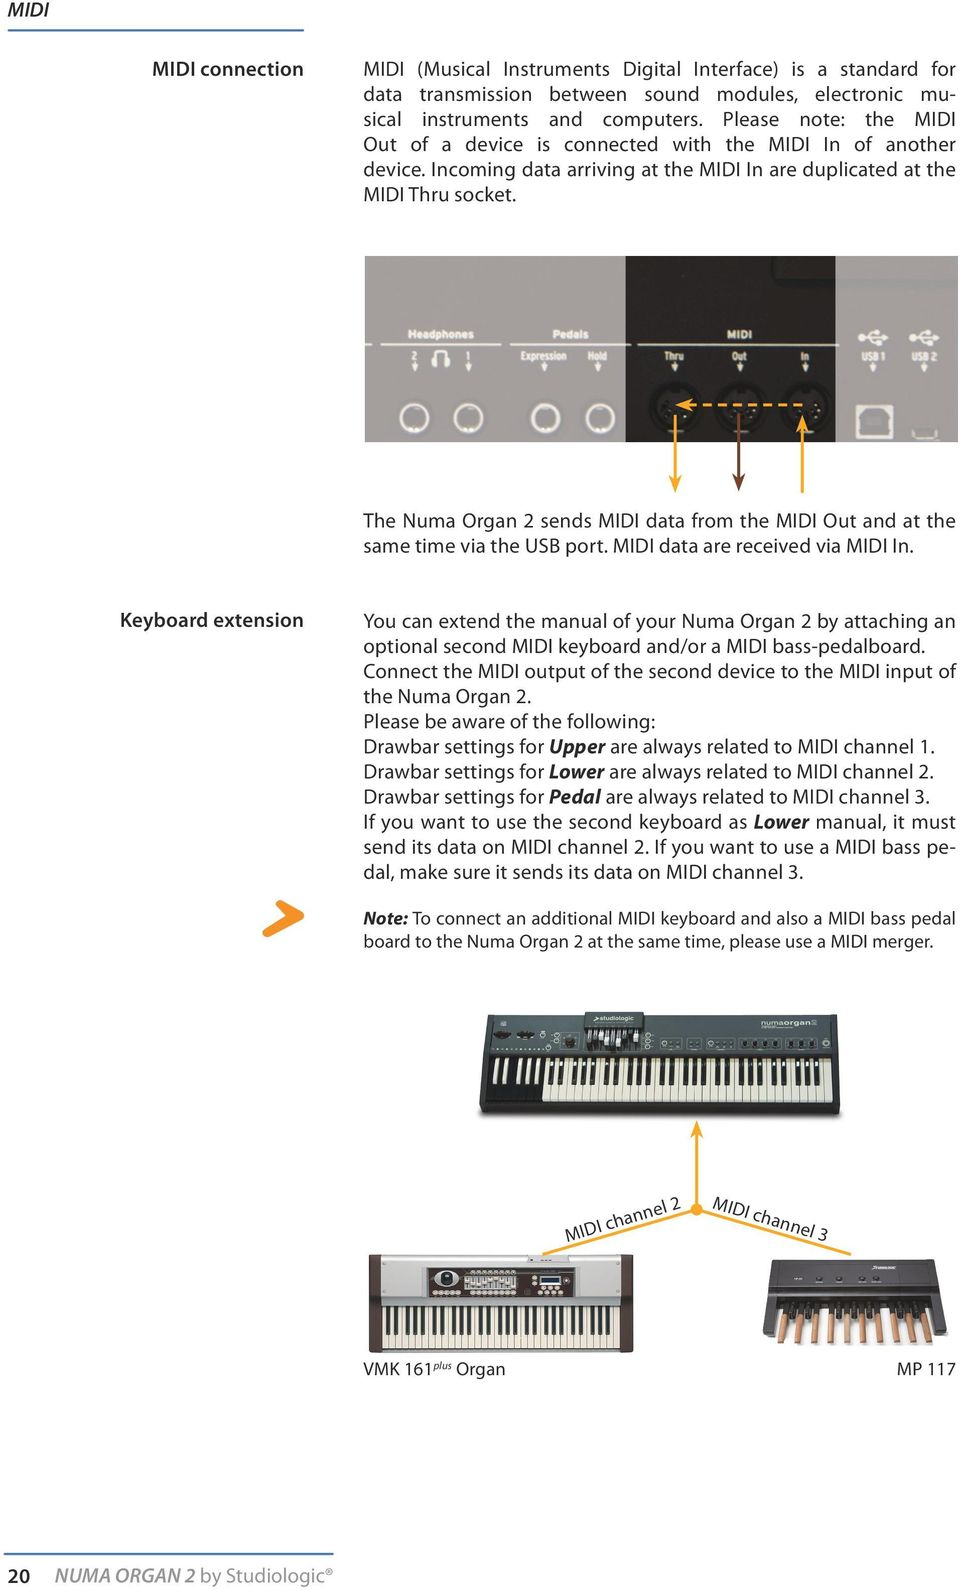 The Numa Organ 2 sends MIDI data from the MIDI Out and at the same time via the USB port. MIDI data are received via MIDI In.